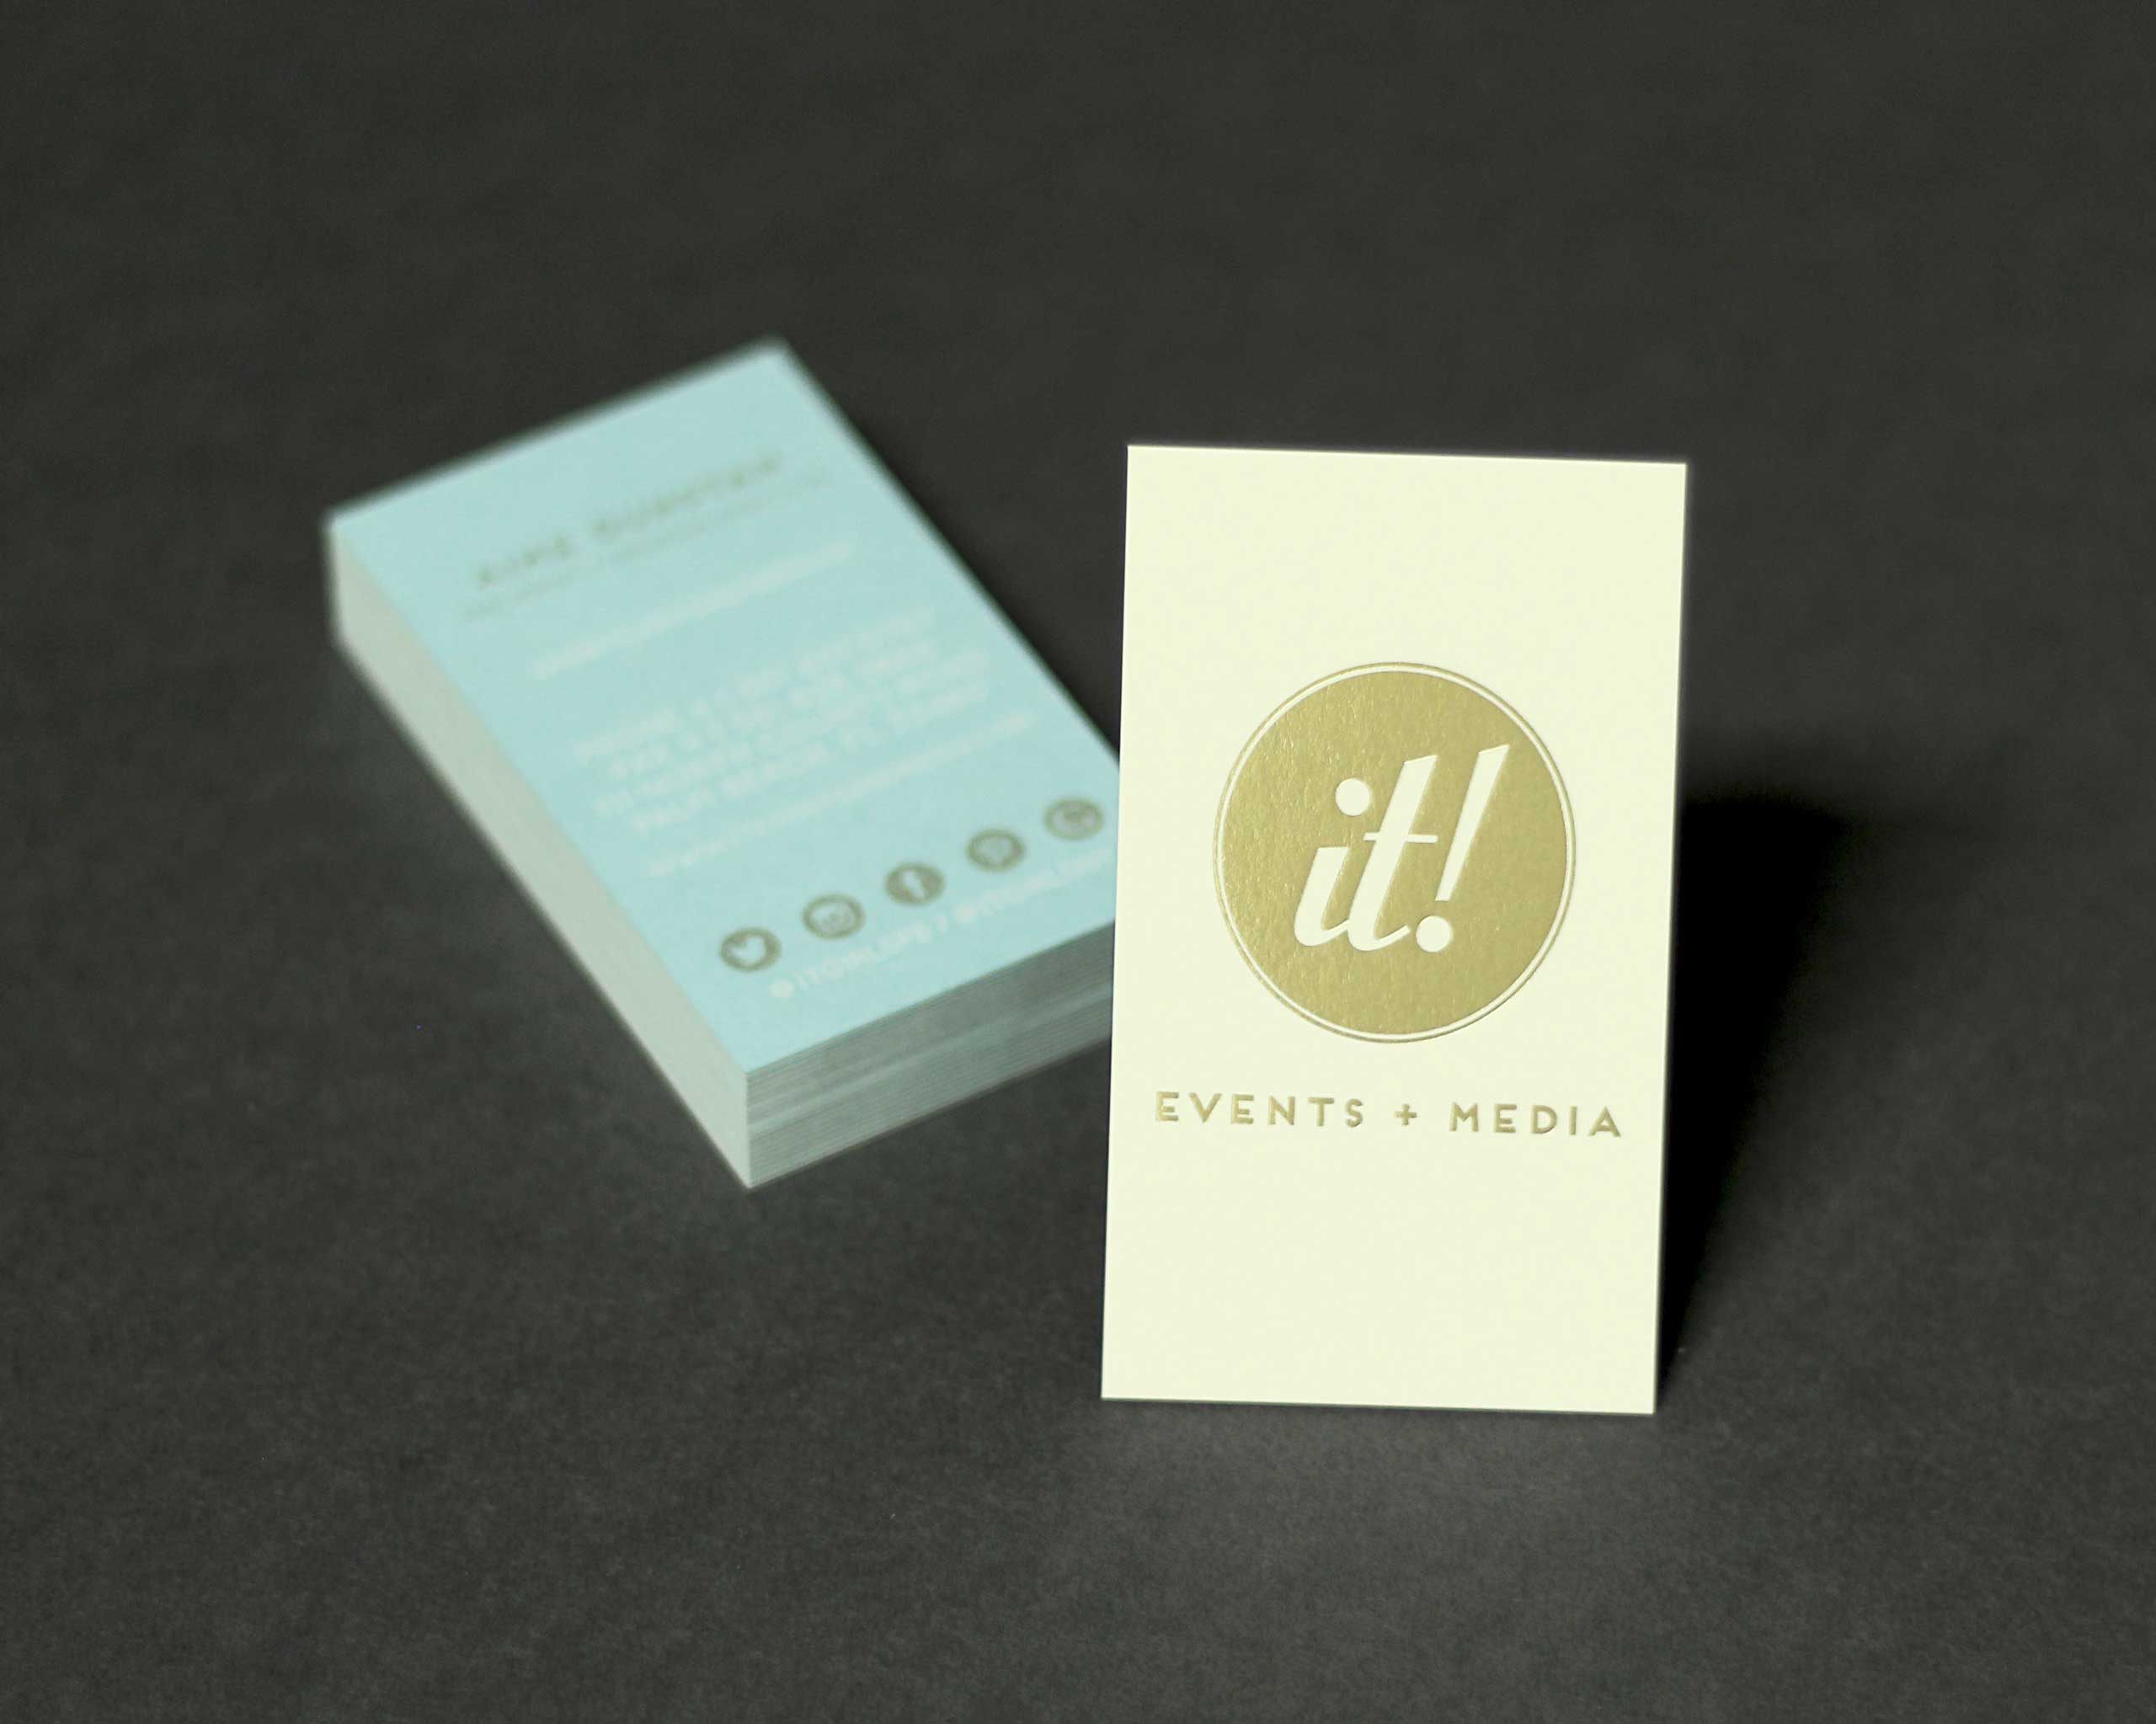 Dorable business card printing salt lake city pictures business magnificent business card printing salt lake city photo business reheart Choice Image